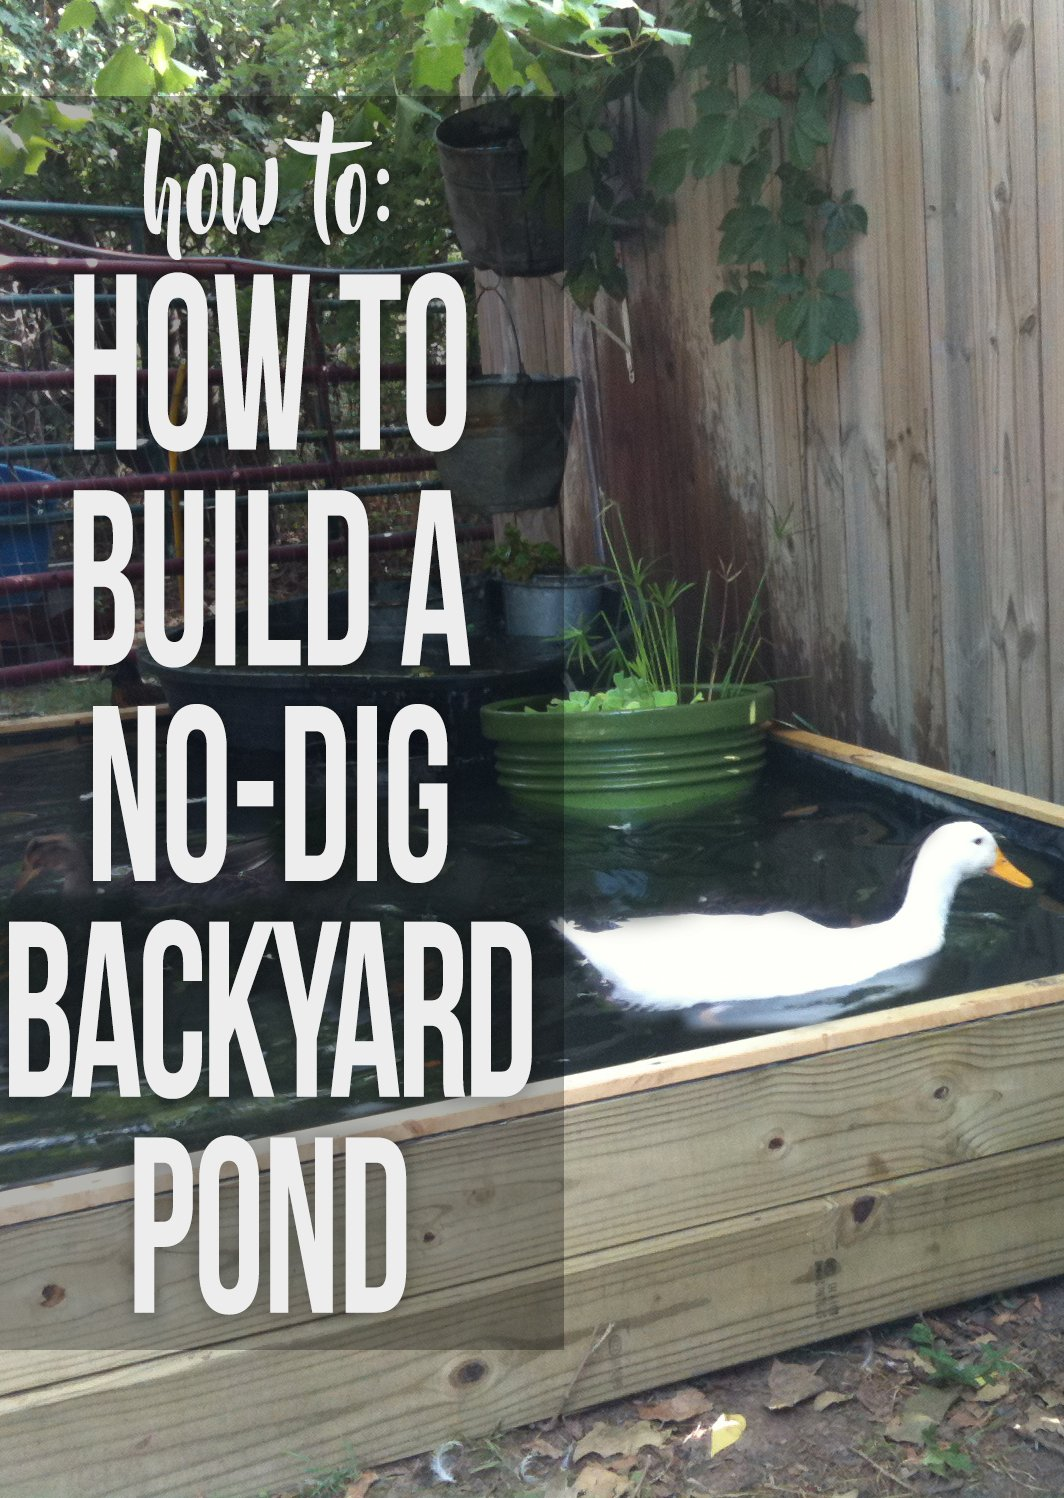 Diy duck pond do it your self for Garden pond building instructions